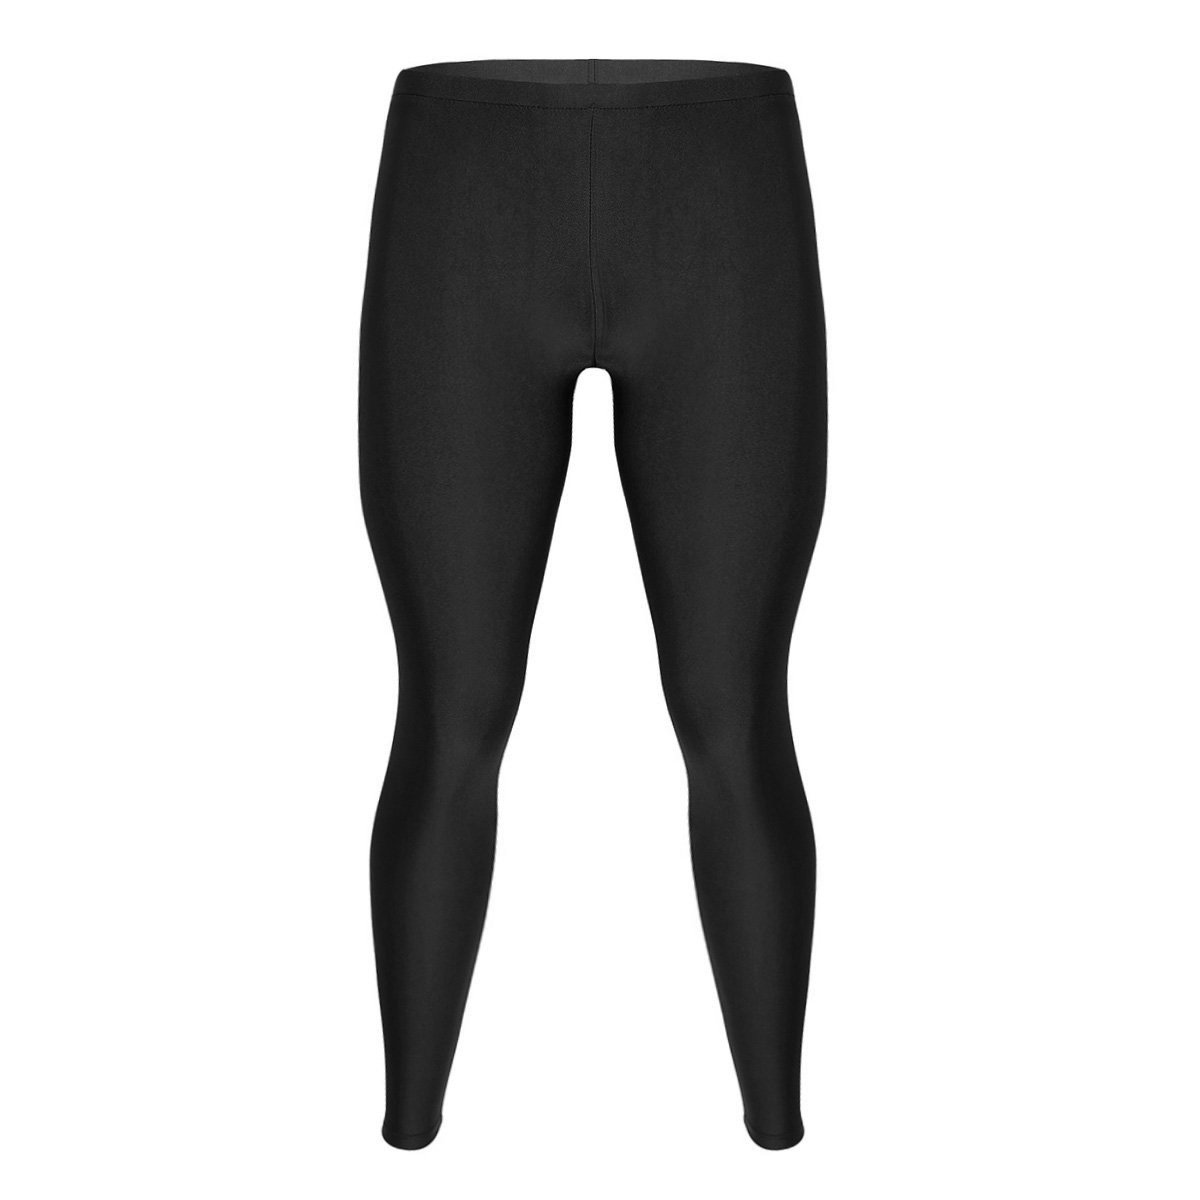 FEESHOW Mens Compression Pants Running Tights Long Skinny Leggings Baselayer Quick Dry Trousers